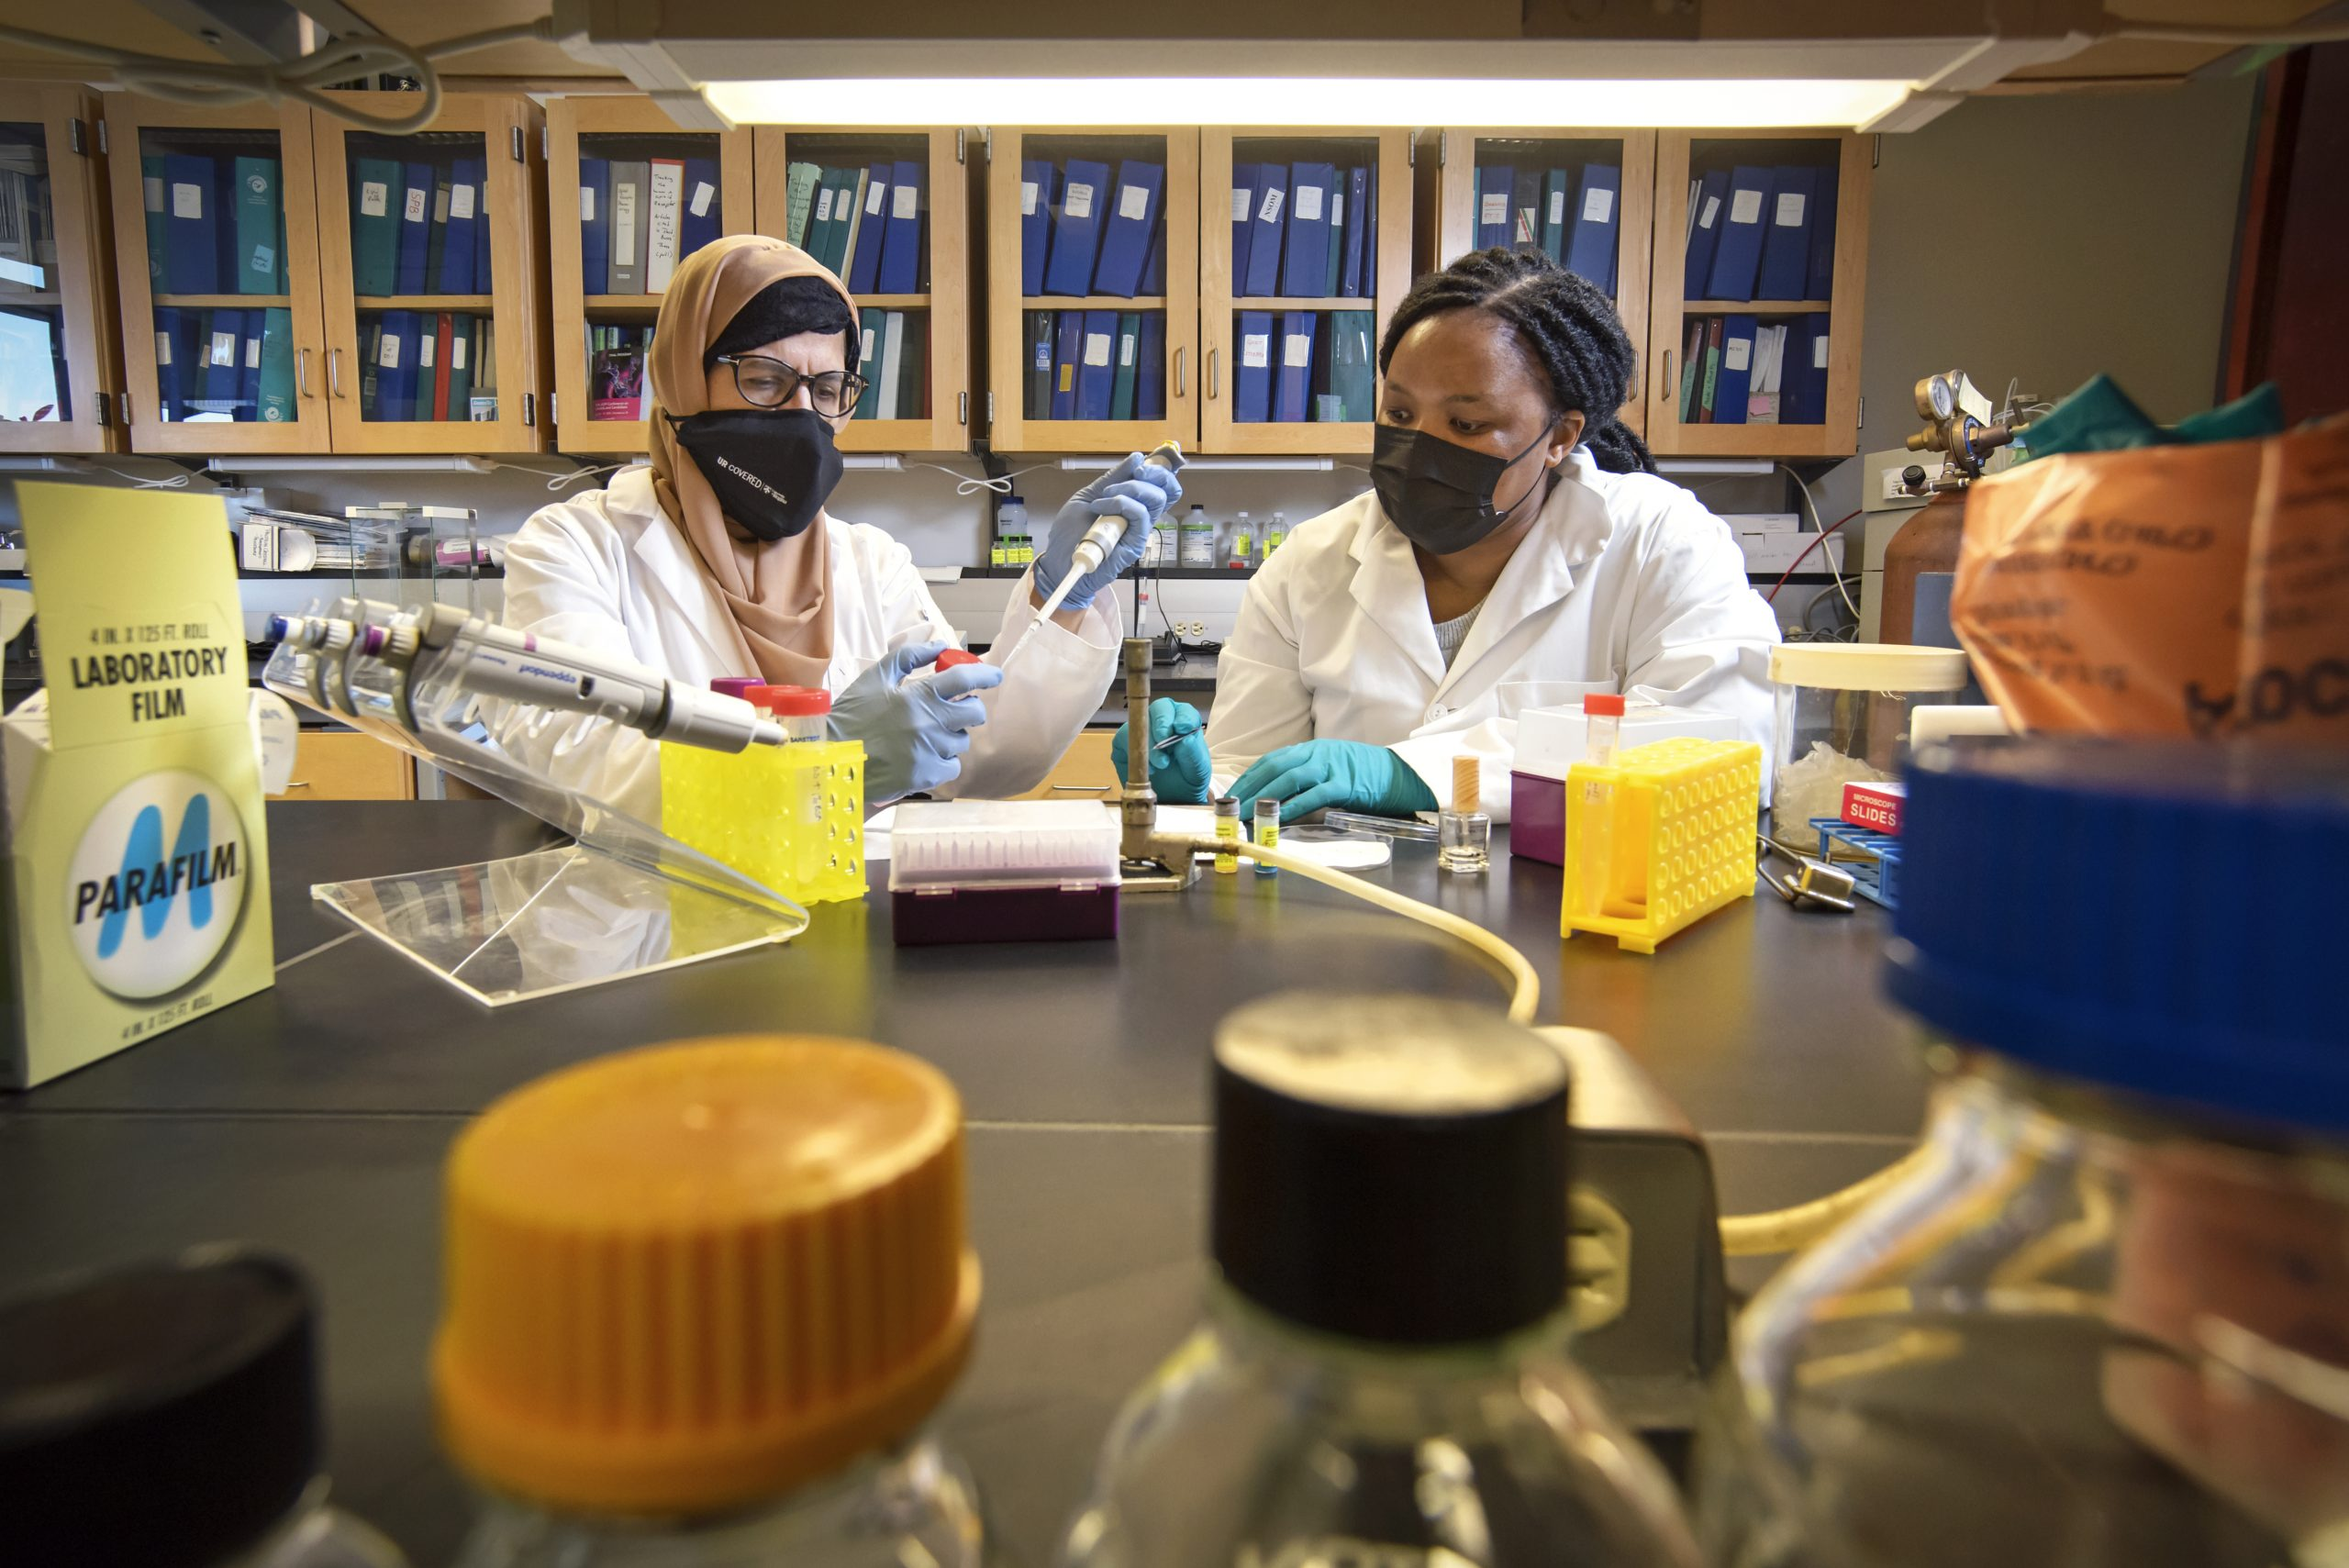 Research associate Dr. Taranum Sultana and Easter Ndlovu, a doctoral candidate in chemistry and biochemistry, working in a U of R lab.  (Photo by Trevor Hopkin)